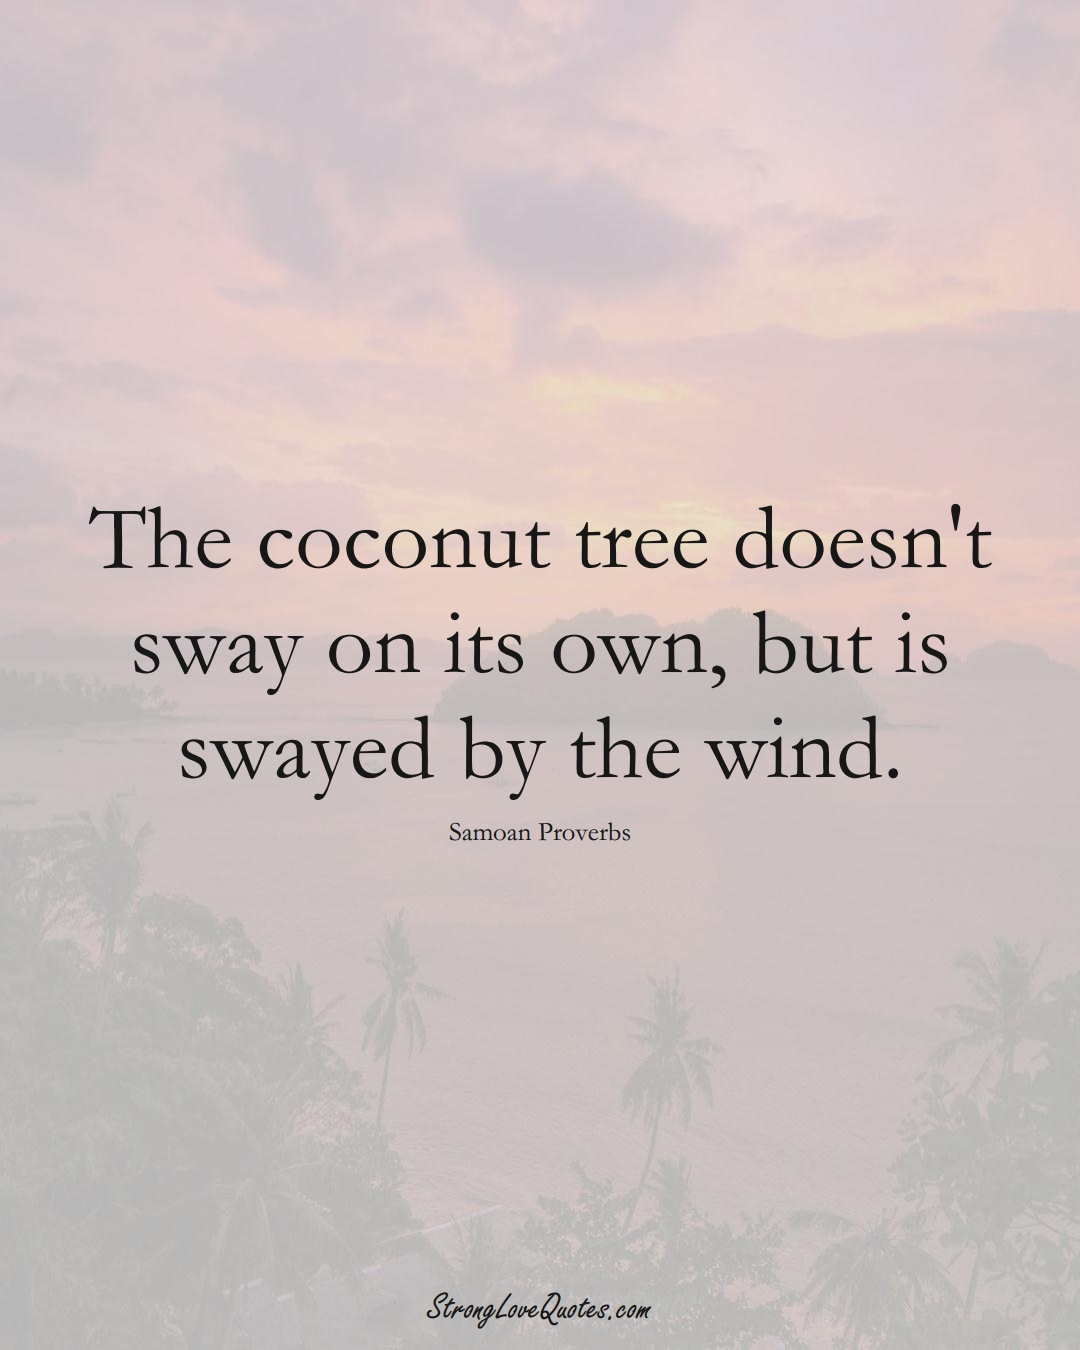 The coconut tree doesn't sway on its own, but is swayed by the wind. (Samoan Sayings);  #AustralianSayings